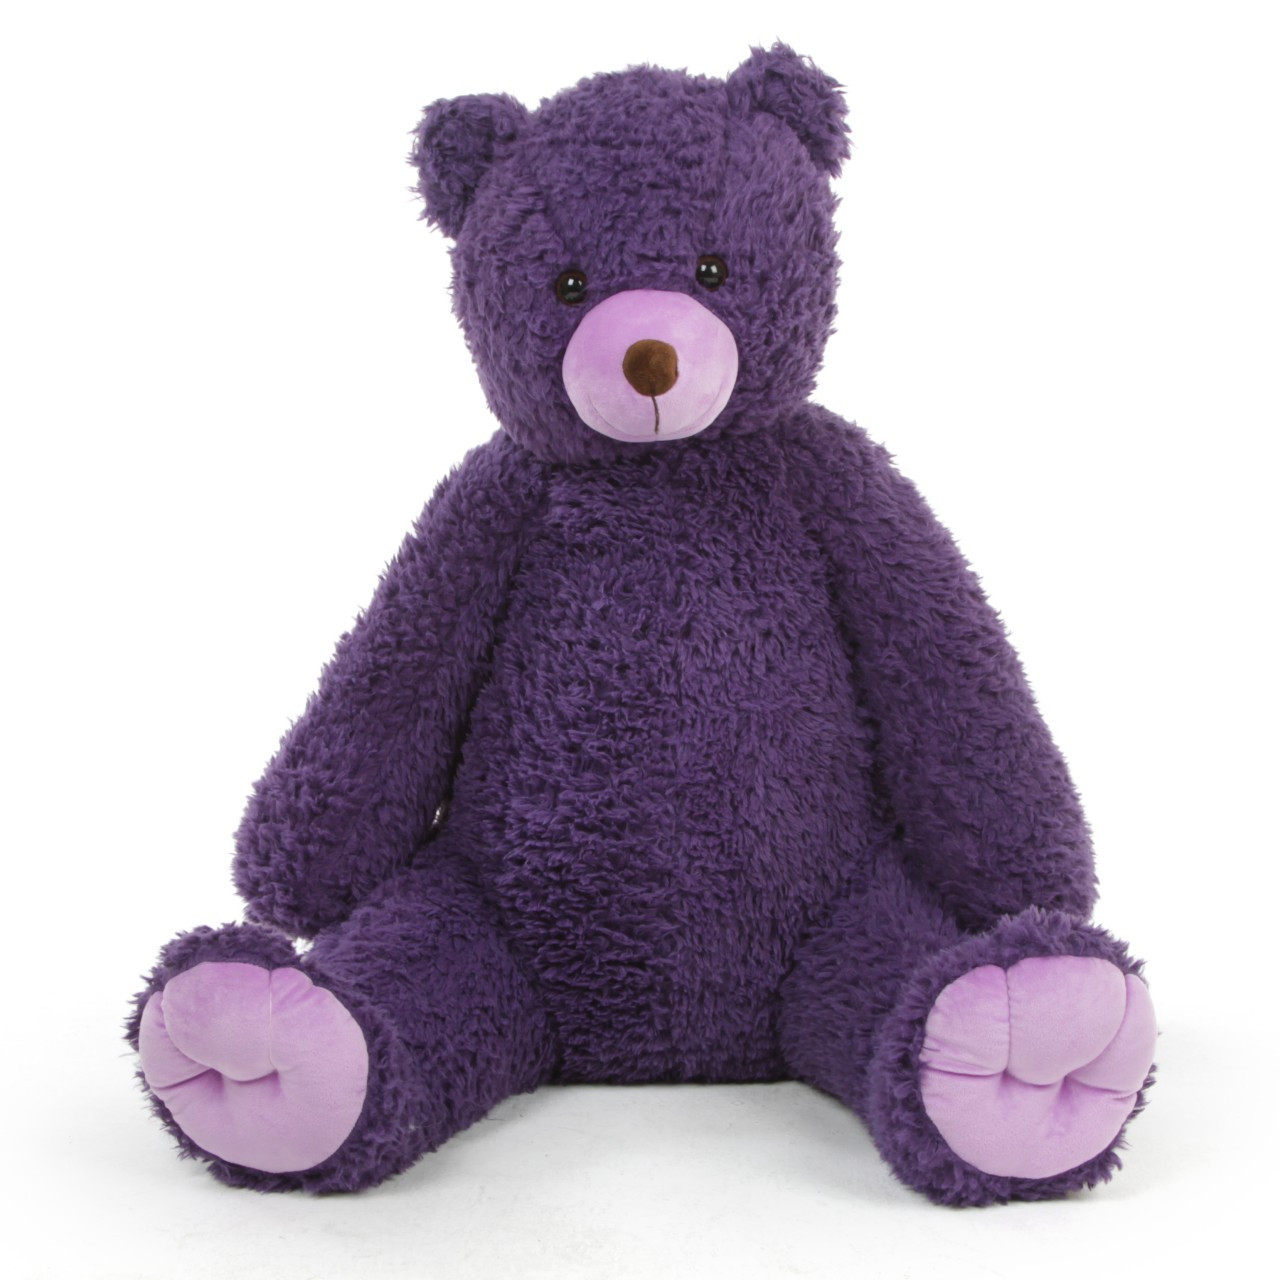 4ft Purple Teddy Bear Violet Woolly Chubs